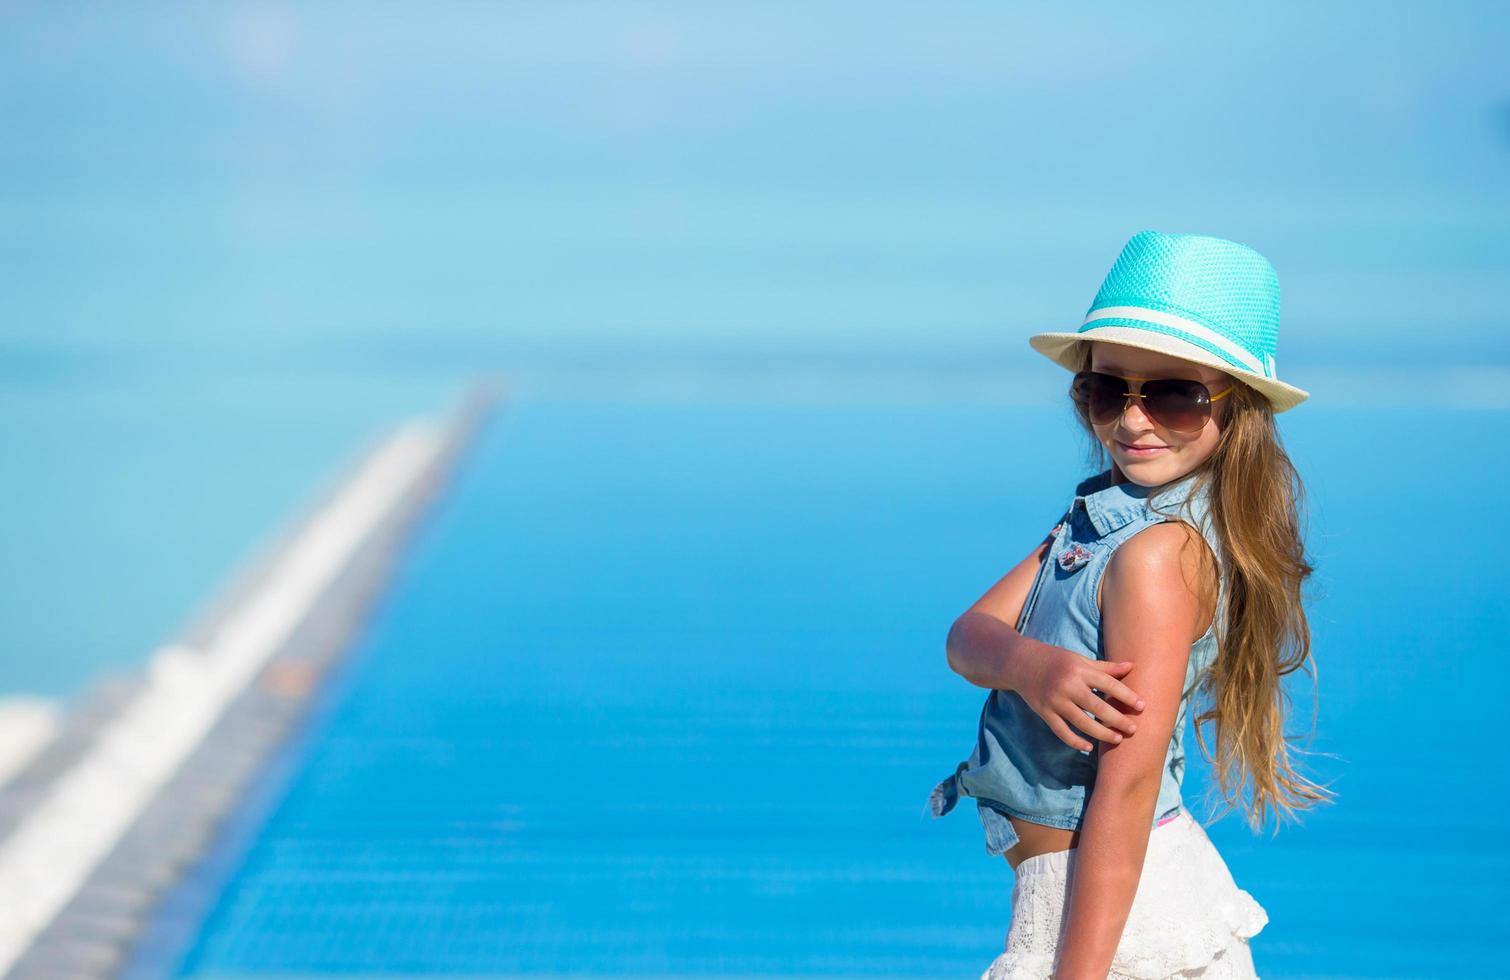 Girl in a hat at a beach photo